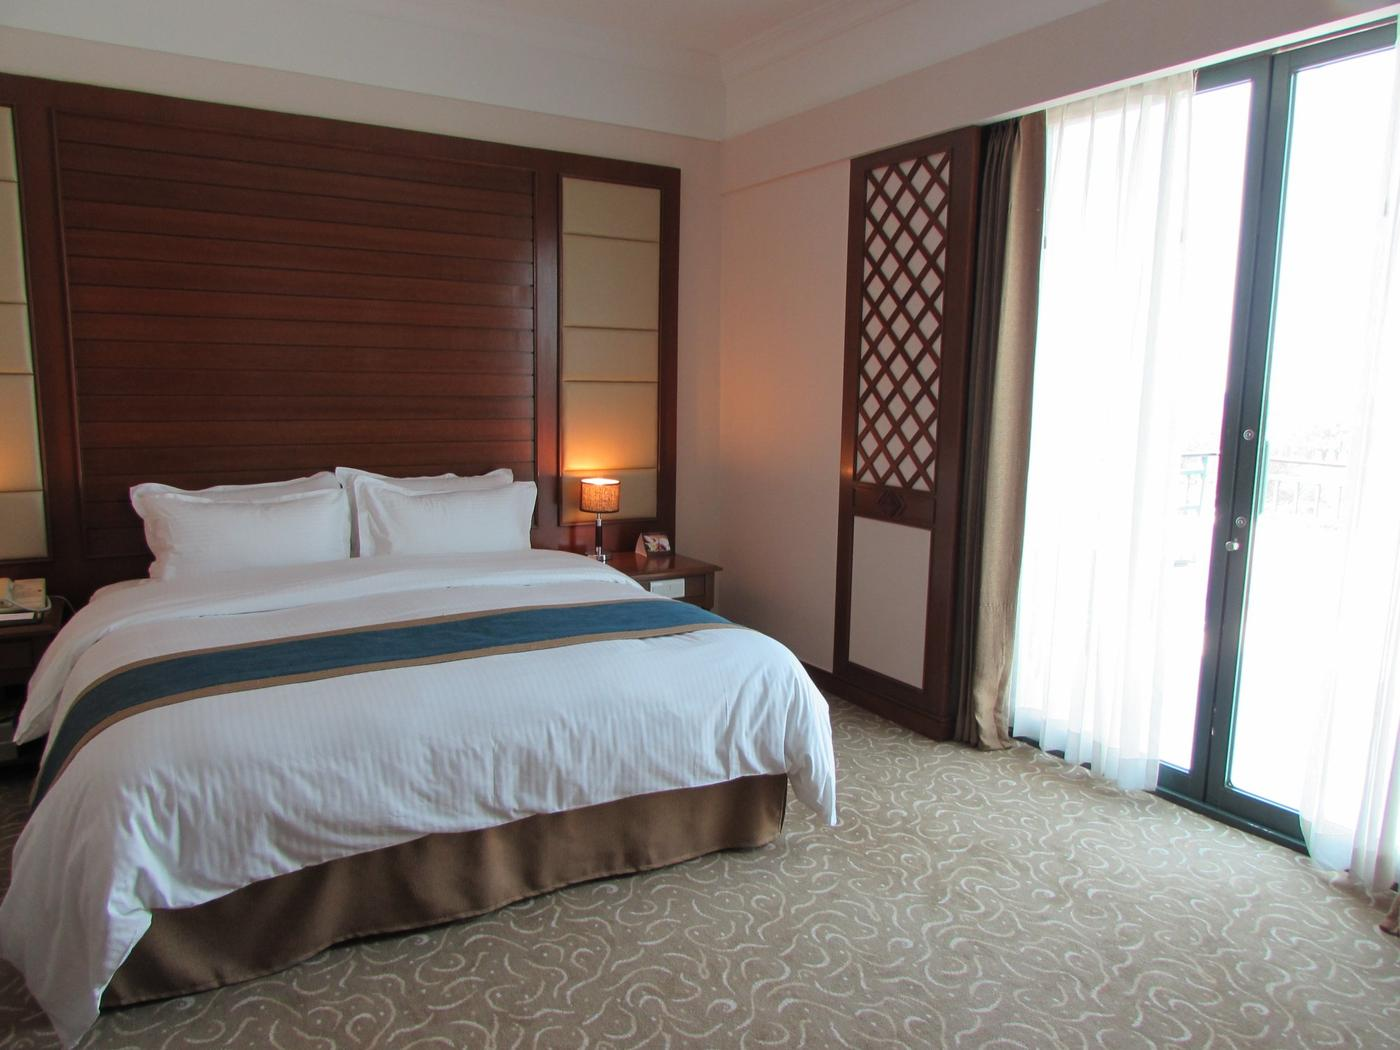 Superior Room, Hilton Mandalay